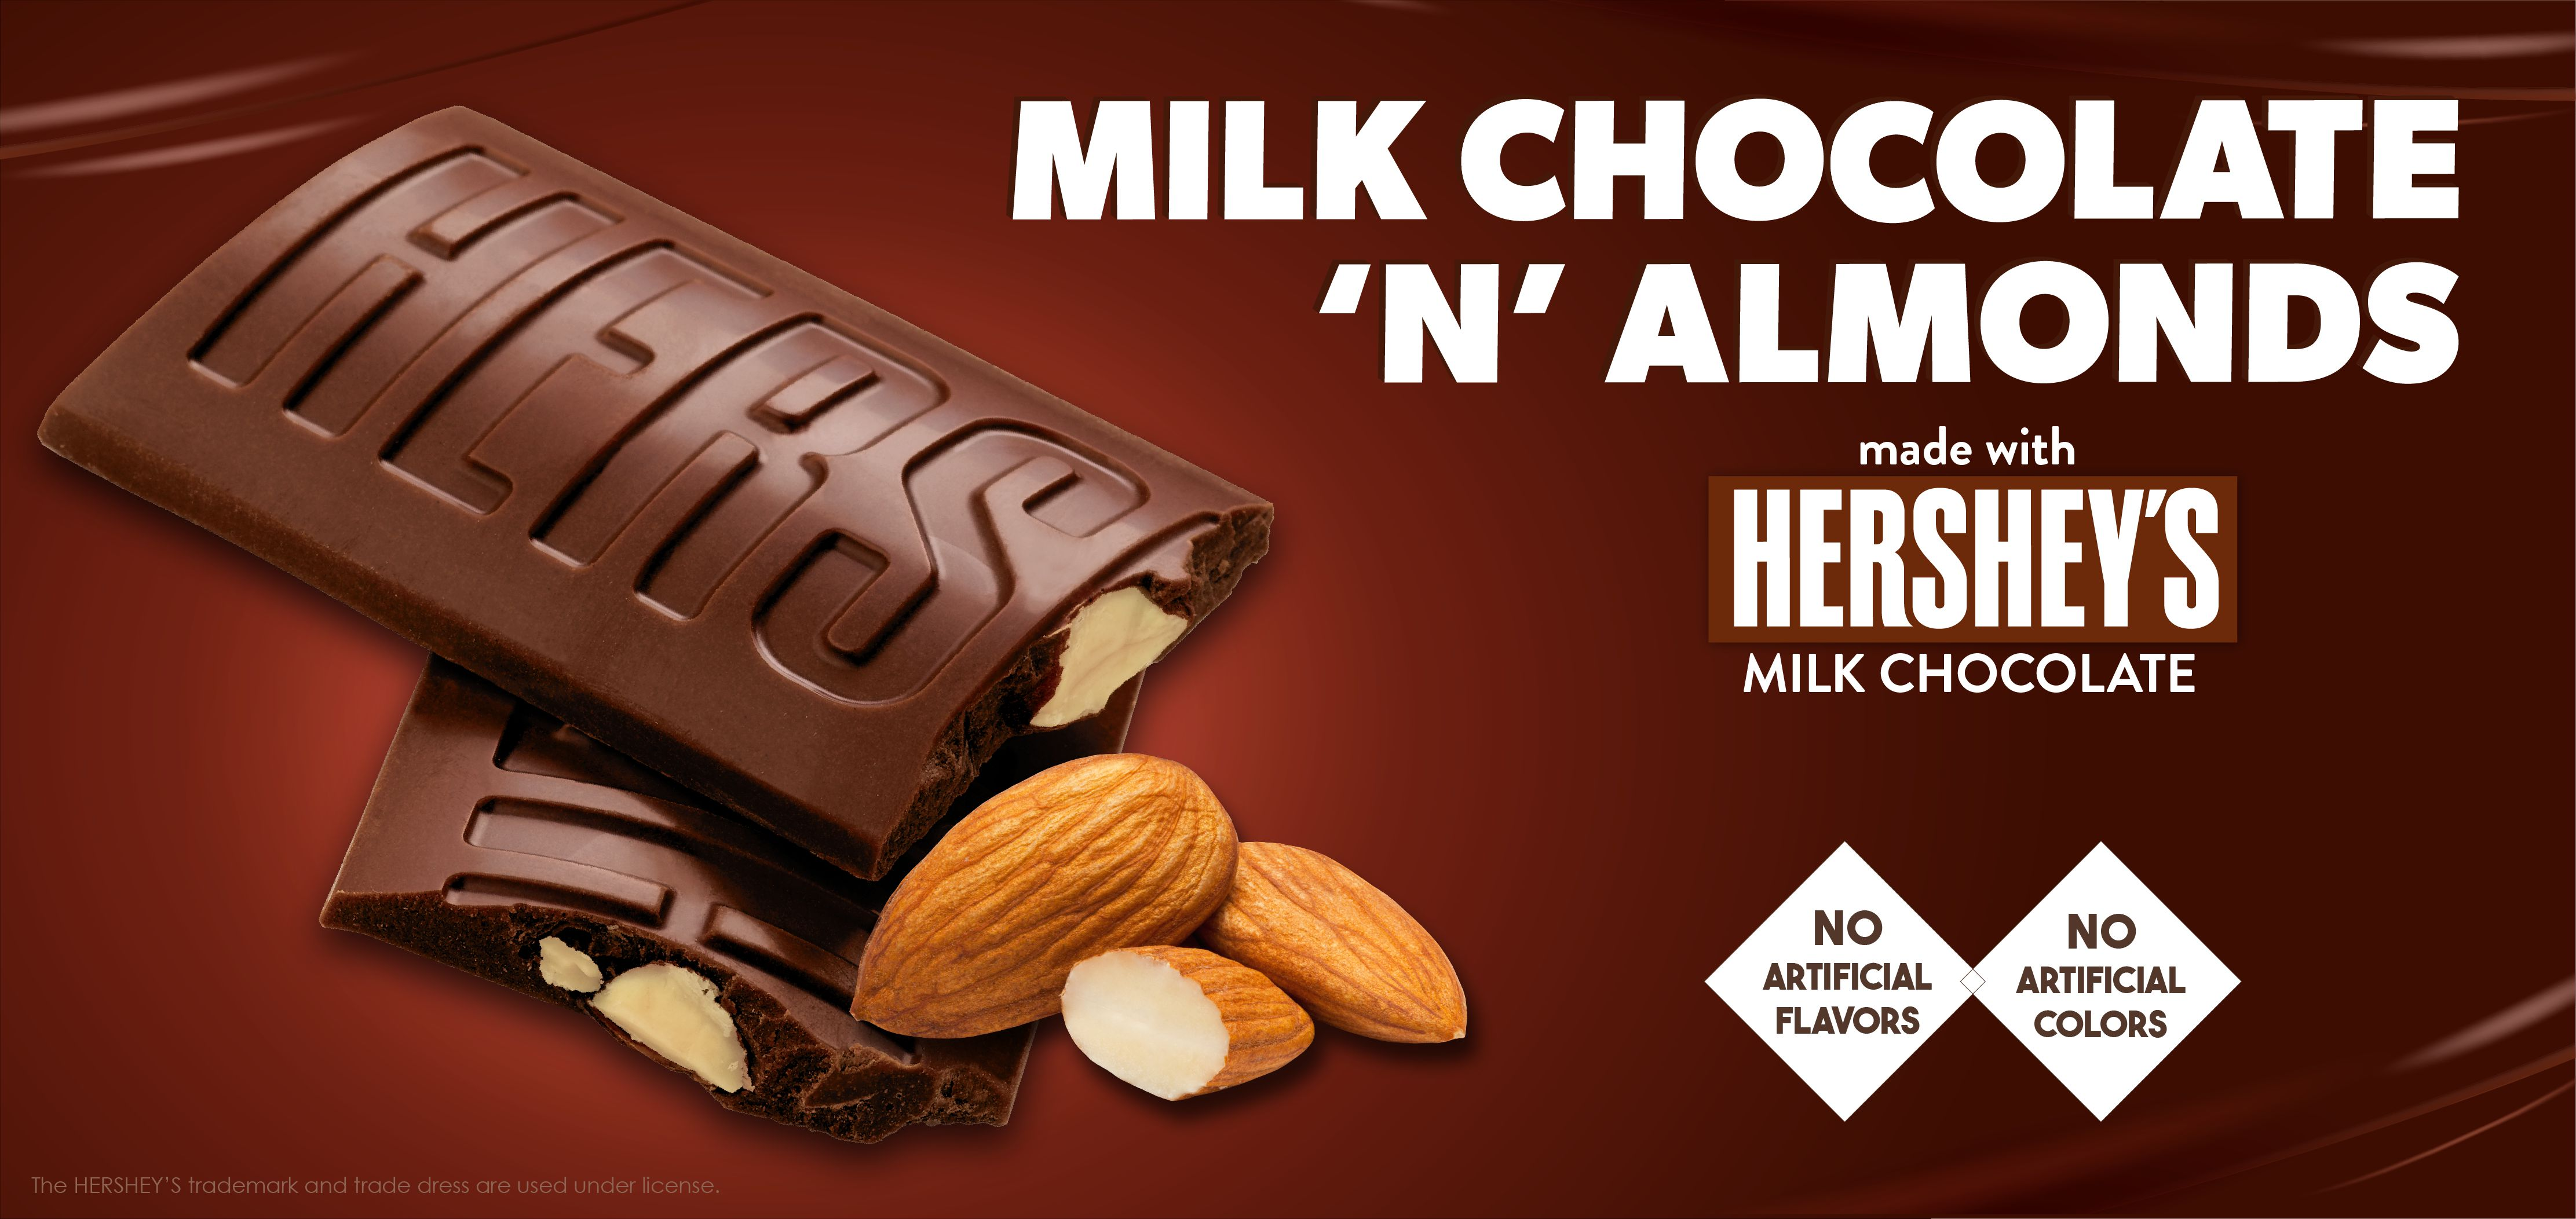 Milk Chocolate 'n' Almonds Made With